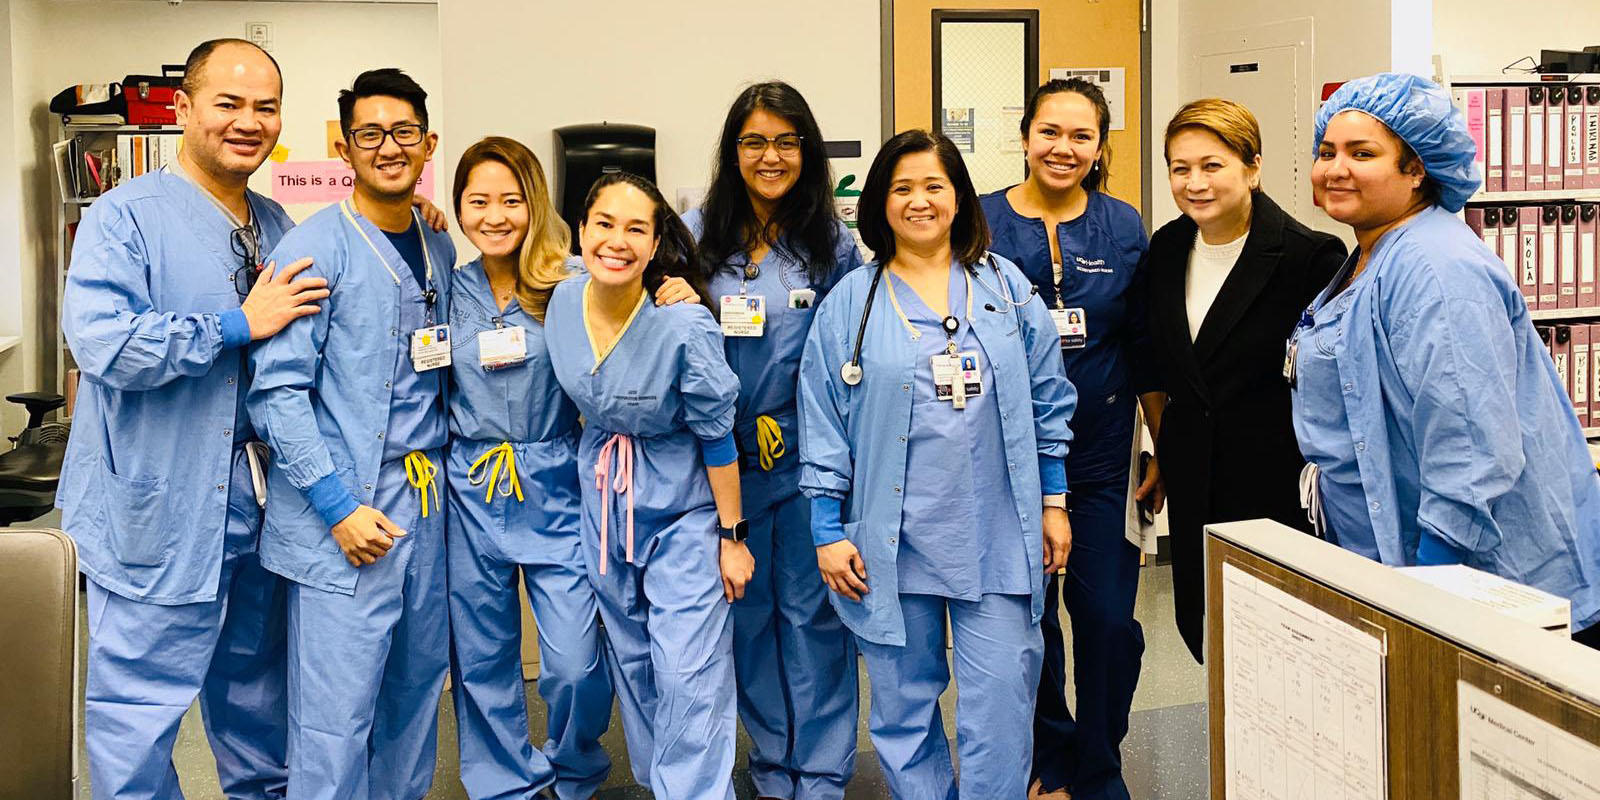 Lana Salvador (center) with her fellow healthcare workers in San Francisco.